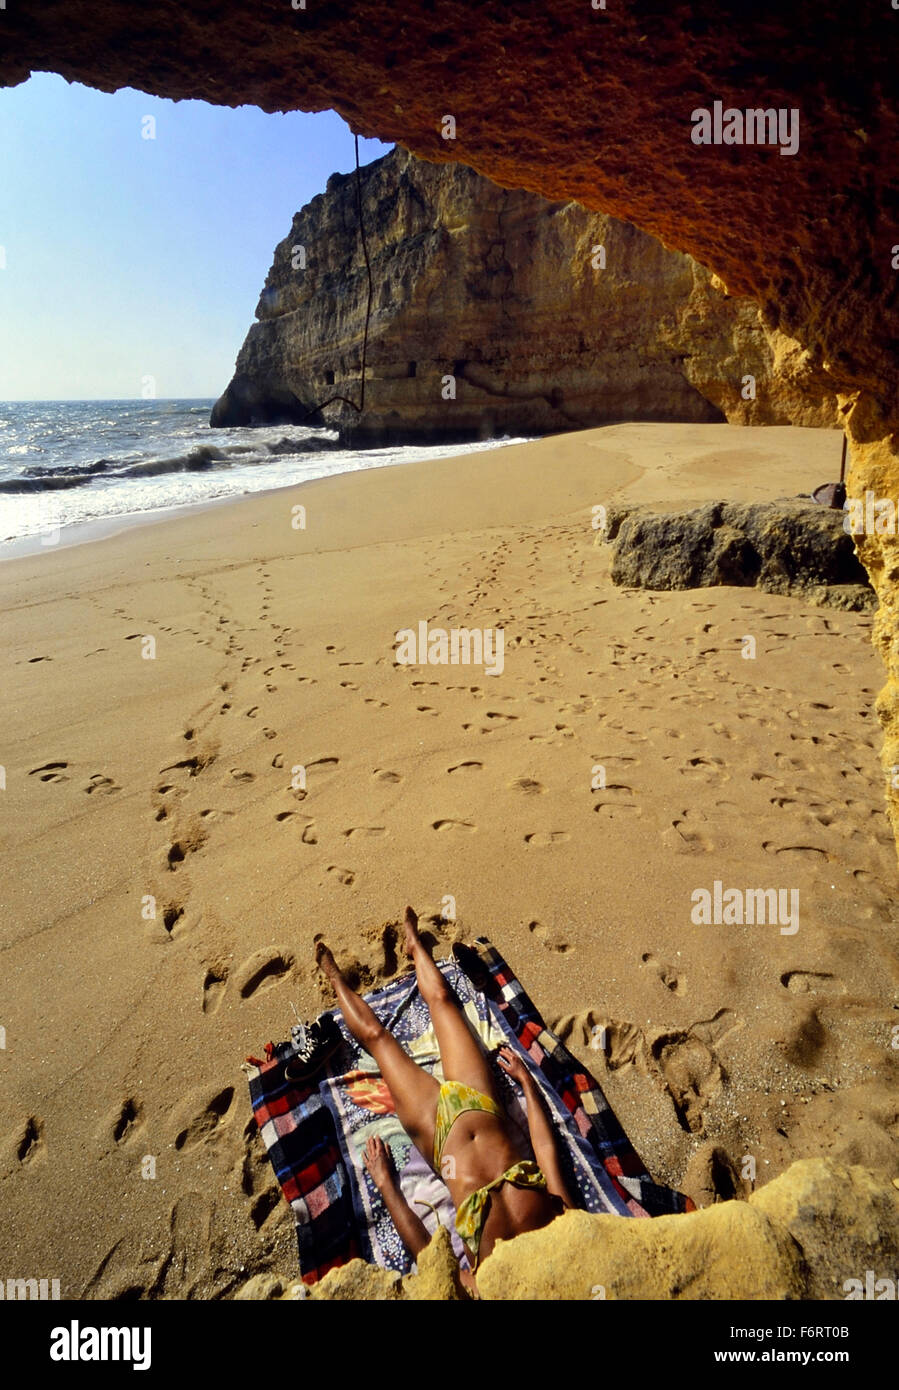 A female sunbather on a deserted beach near Albufeira, The Alarve. Portugal. Europe - Stock Image